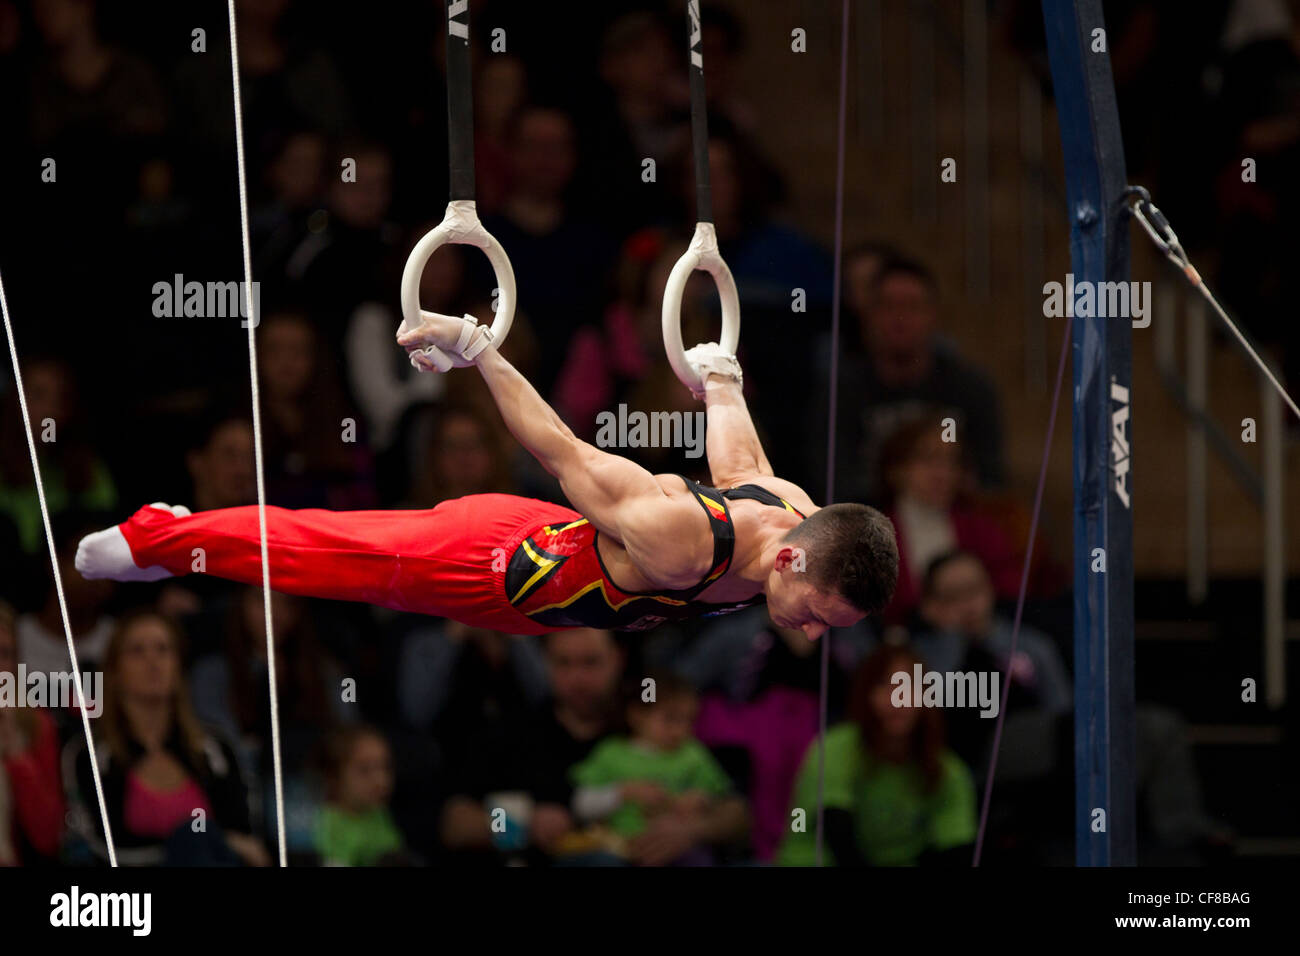 Marcel Nguyen (GER) competes in the still rings event at the 2012 American Cup Gymnastics - Stock Image